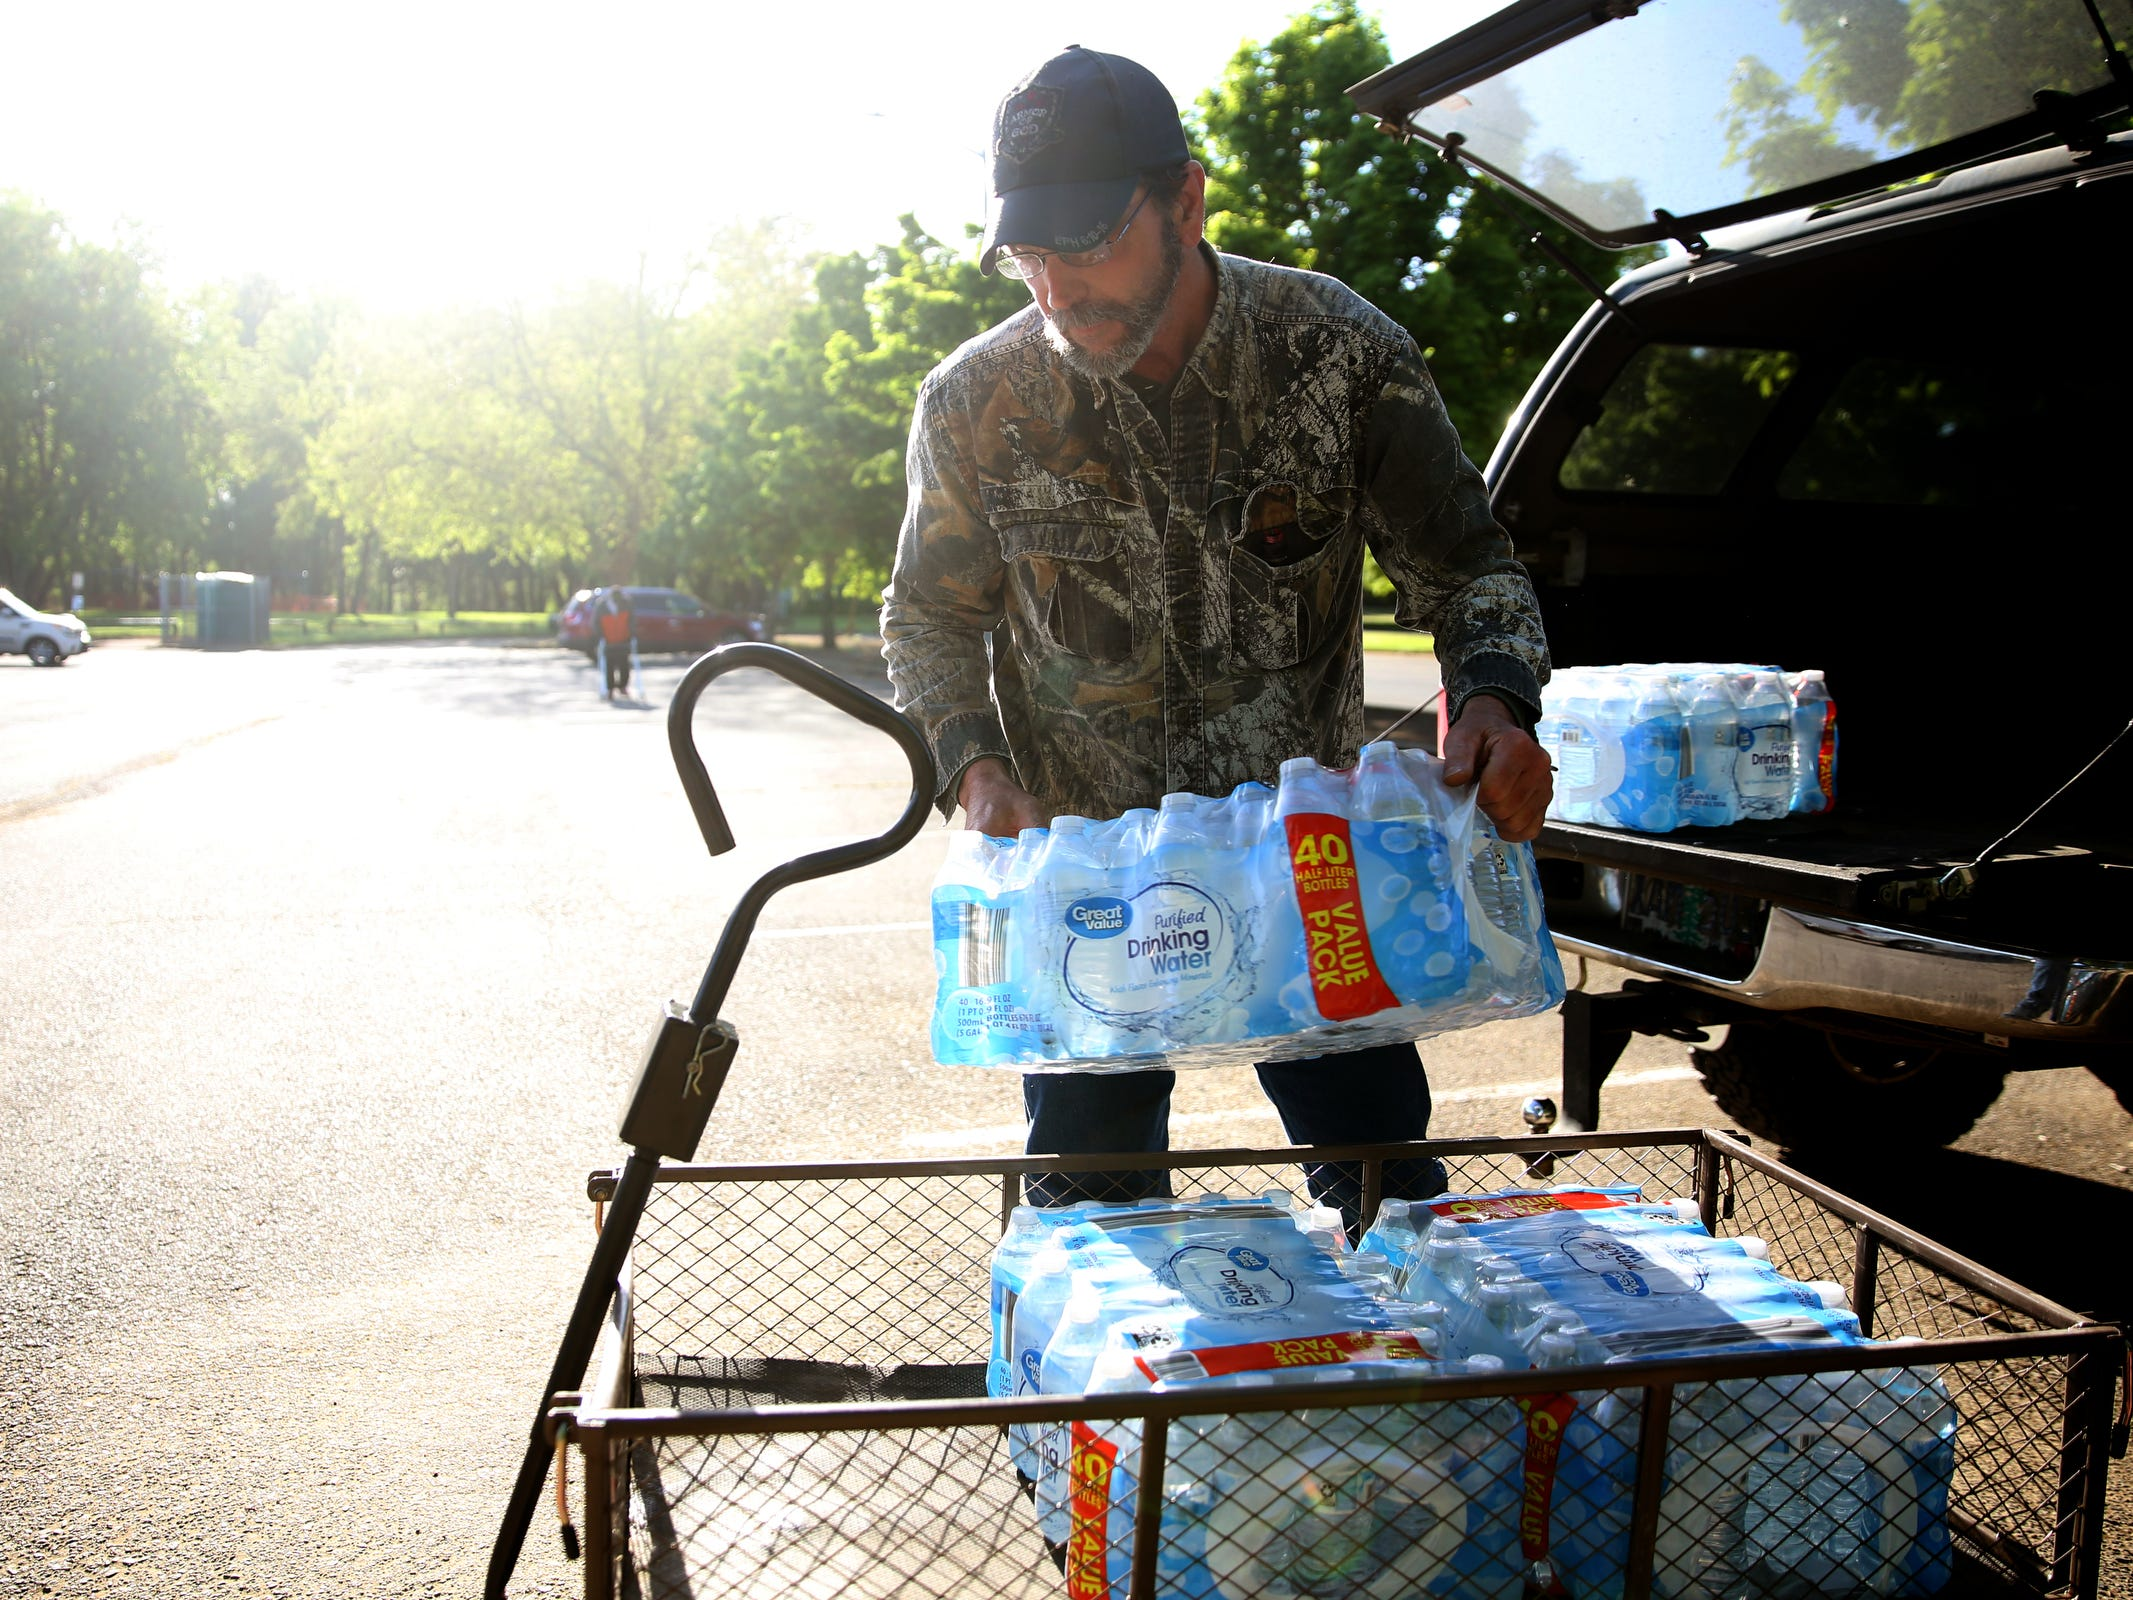 Art Scaglione, a volunteer and advocate for the homeless, loads up cases of water to bring into a homeless camp near Wallace Marine Park in West Salem on May 7, 2019. Signs were posted throughout the camp recently stating personal property must be removed or it will be taken by the landowner and its designated agent starting May 7. An eviction can't be enforced until a court approves it.